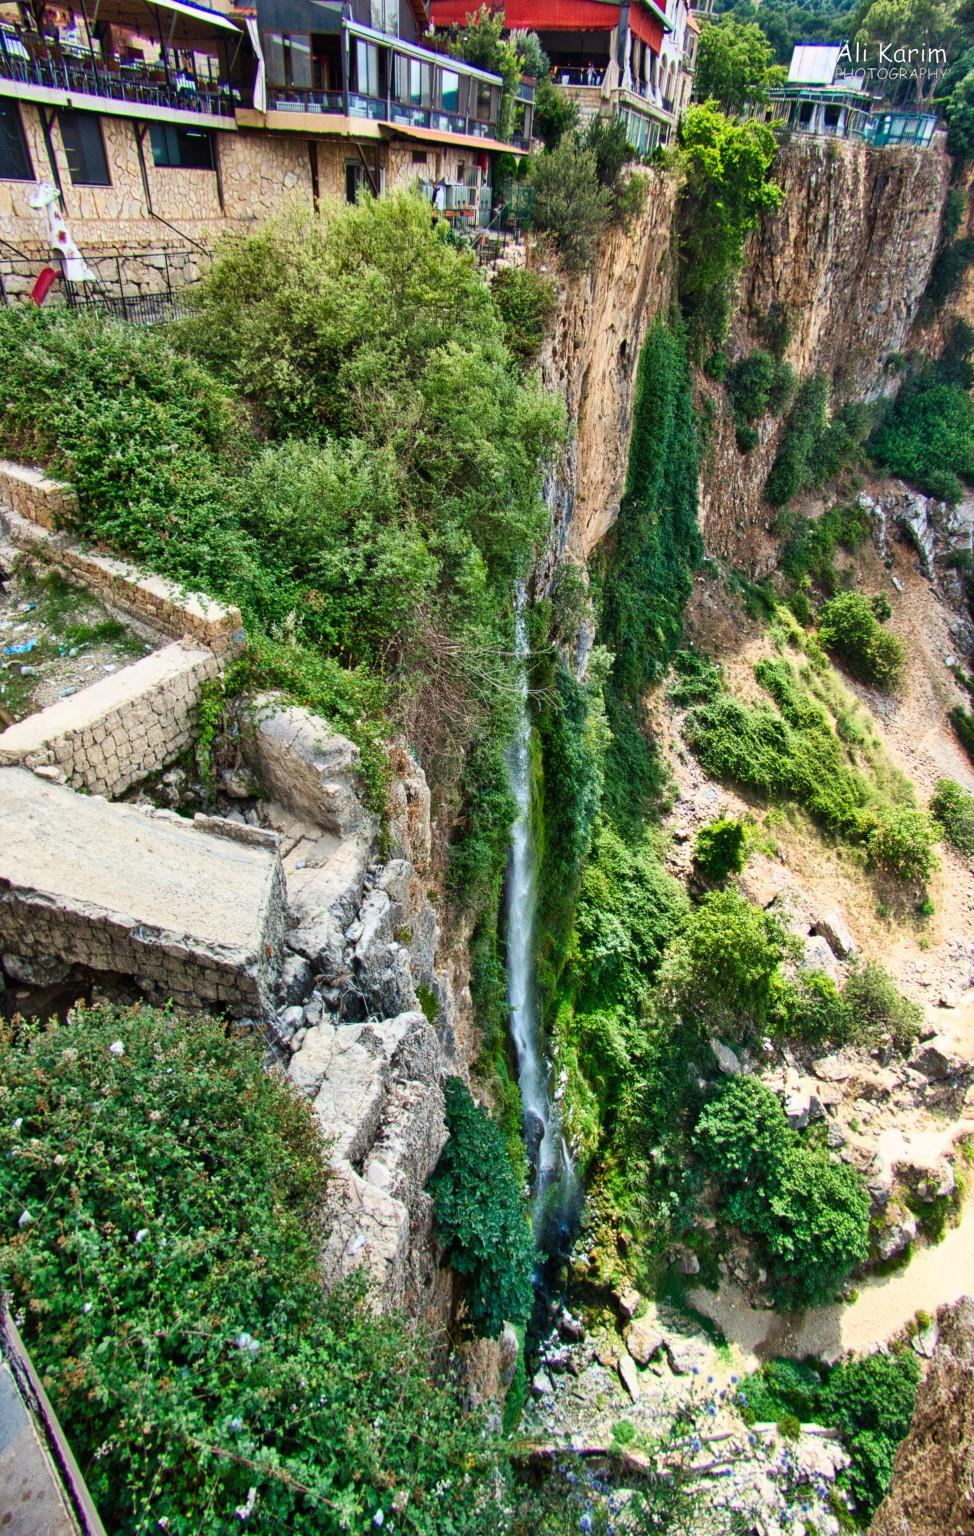 Druze and the Chouf Mountains Jezzine waterfall was at low capacity as it was the dry season; disappointing